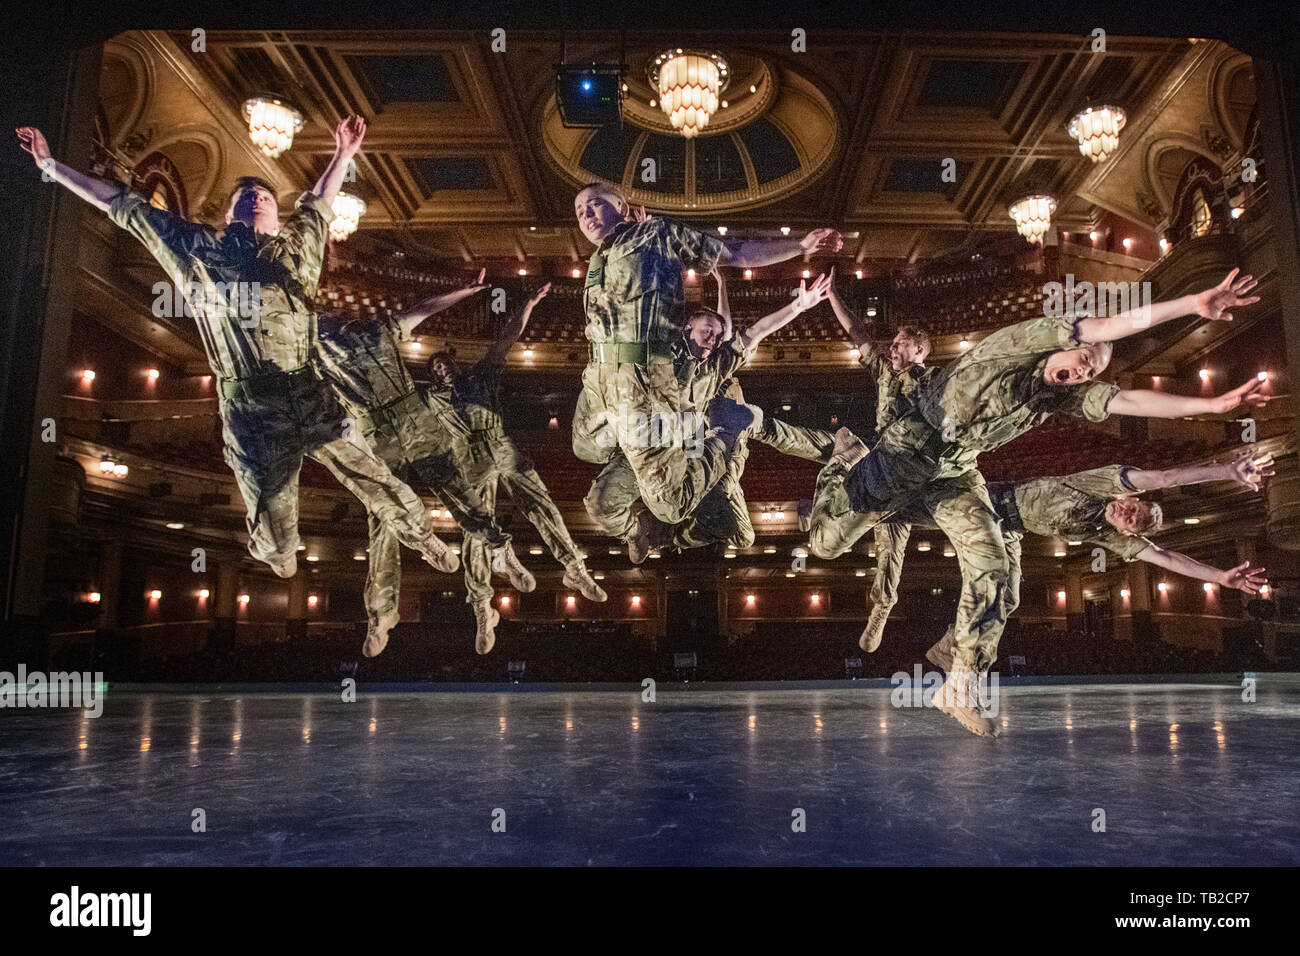 Edinburgh    May  30 2019; Scottish premiere of 10 SOLDIERS by Commonwealth Games Handover choreographer and Birmingham Hippodrome Associate Artist, Rosie Kay at the Festival Theatre.    credit steven scott taylor / alamy live news - Stock Image